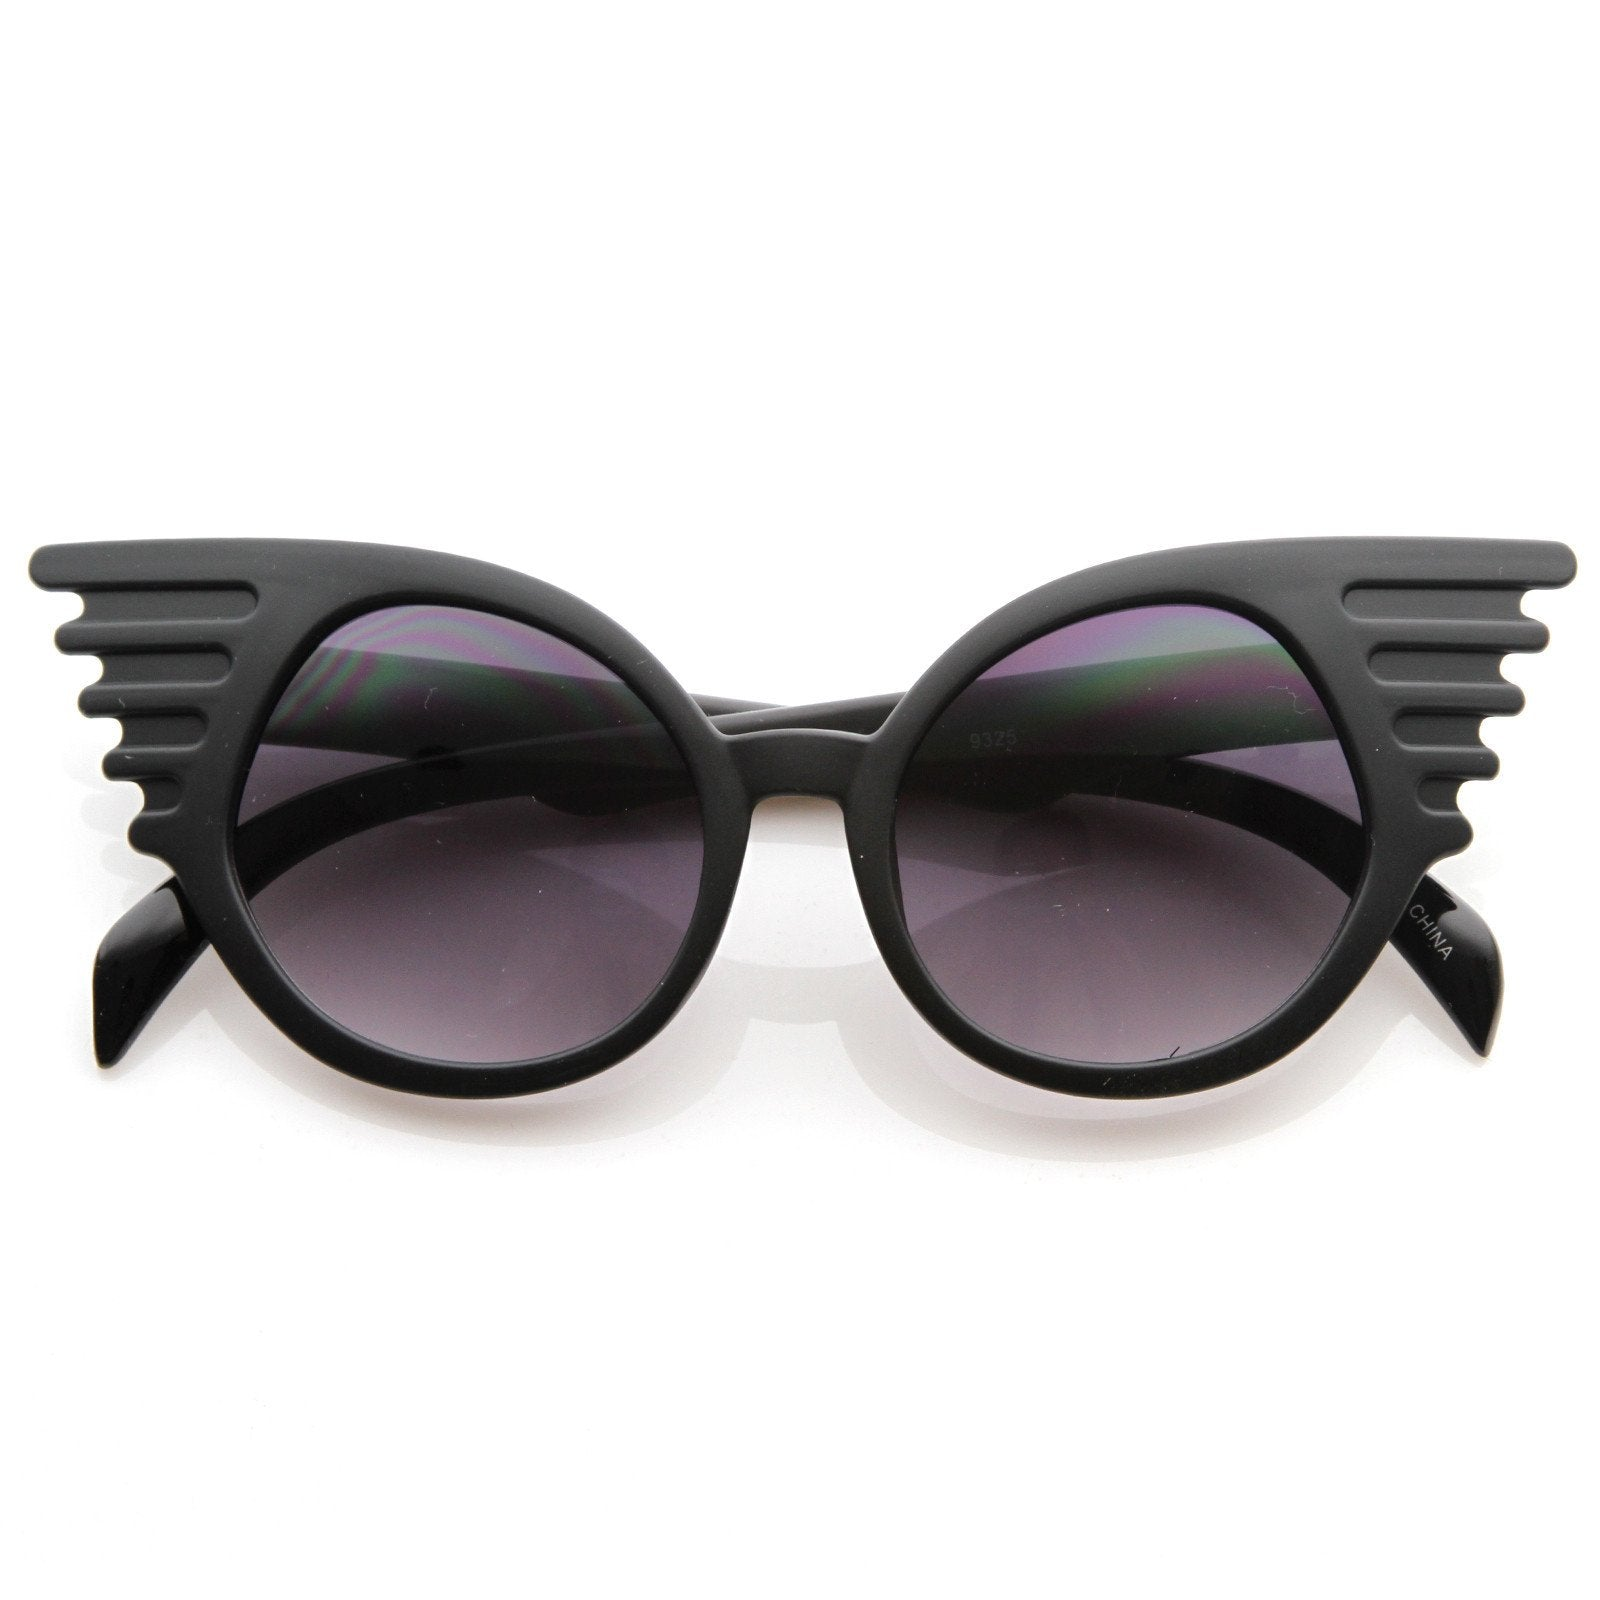 62deaac6178c Trendy Unique Fashion Angel Wings Round Sunglasses - zeroUV